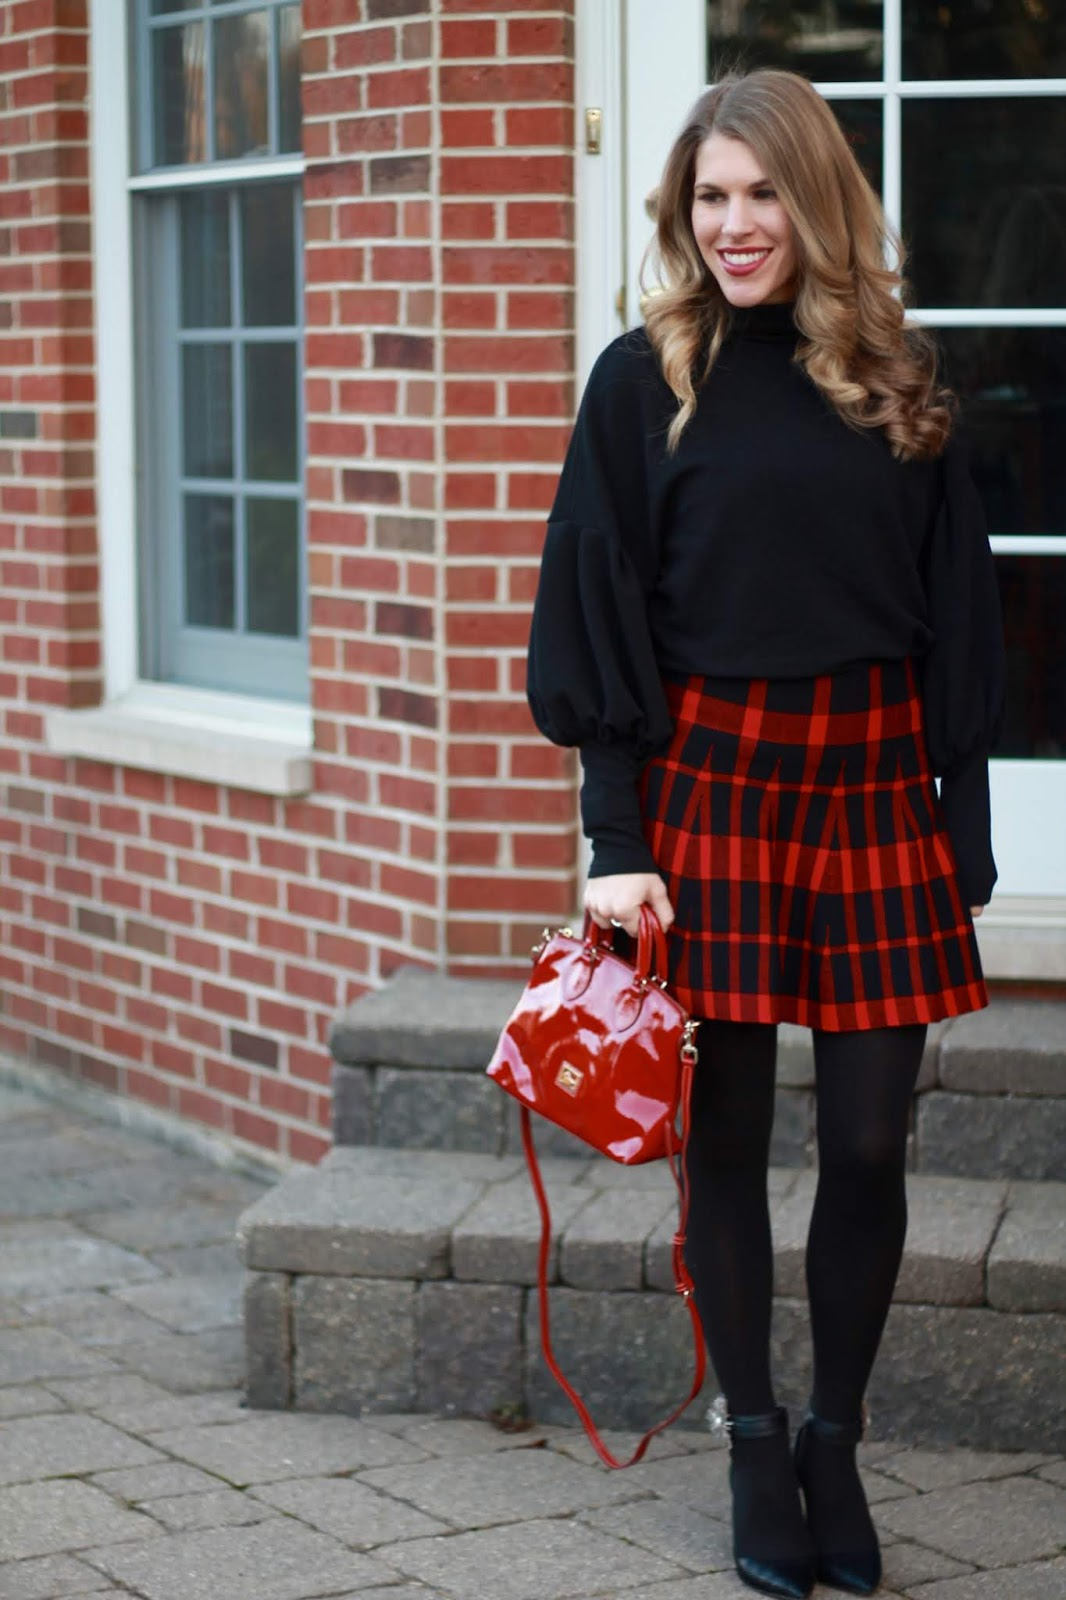 black lantern sleeve top, red patent leather satchel, red plaid skirt, Alterre shoe charms, black ankle strap heels